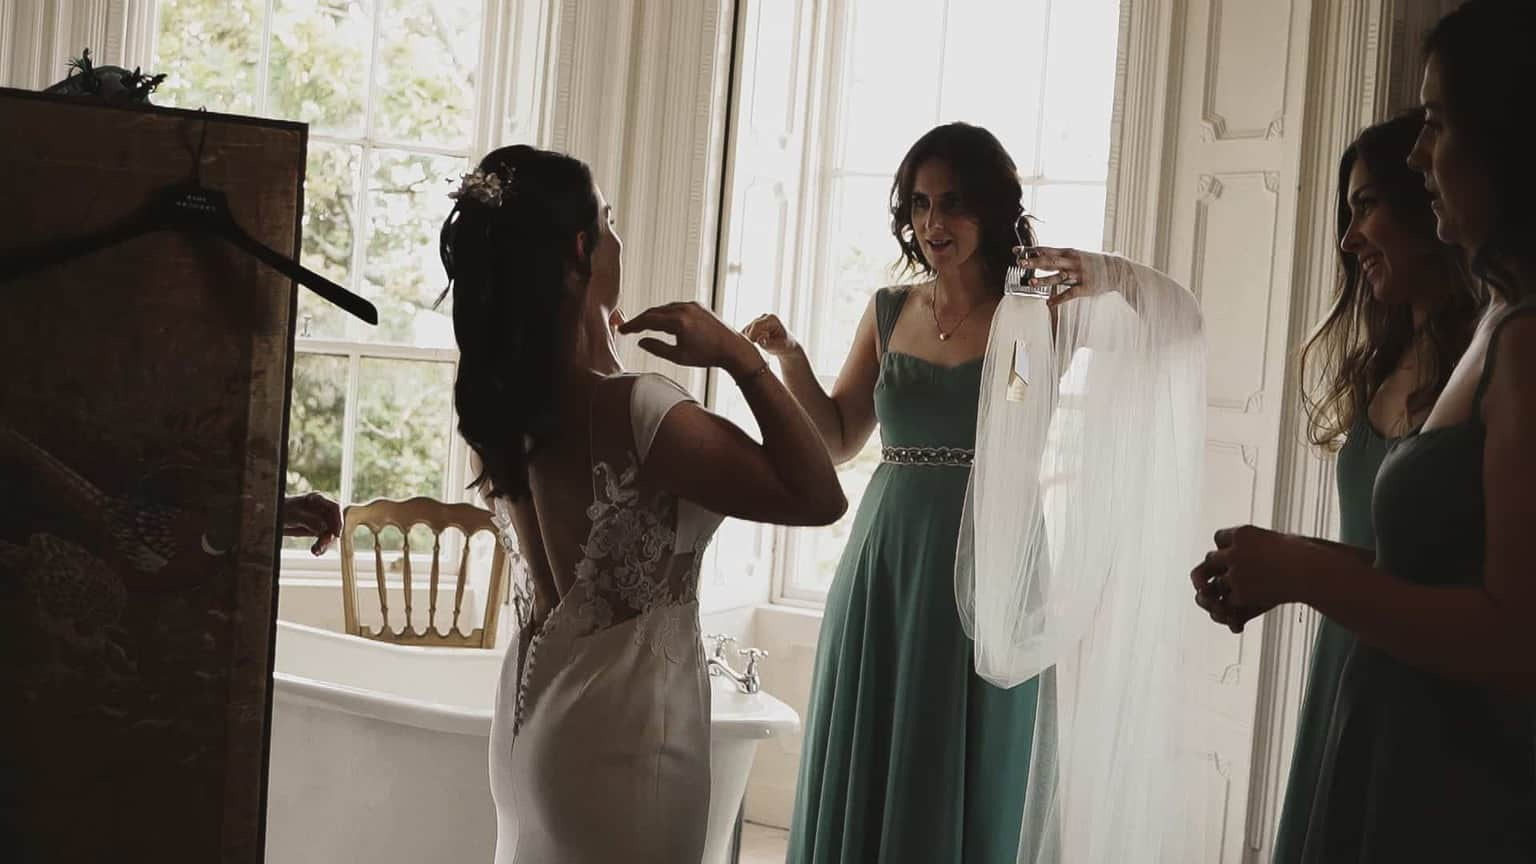 Bride is getting dress, one of bridesmaid is holding veil.